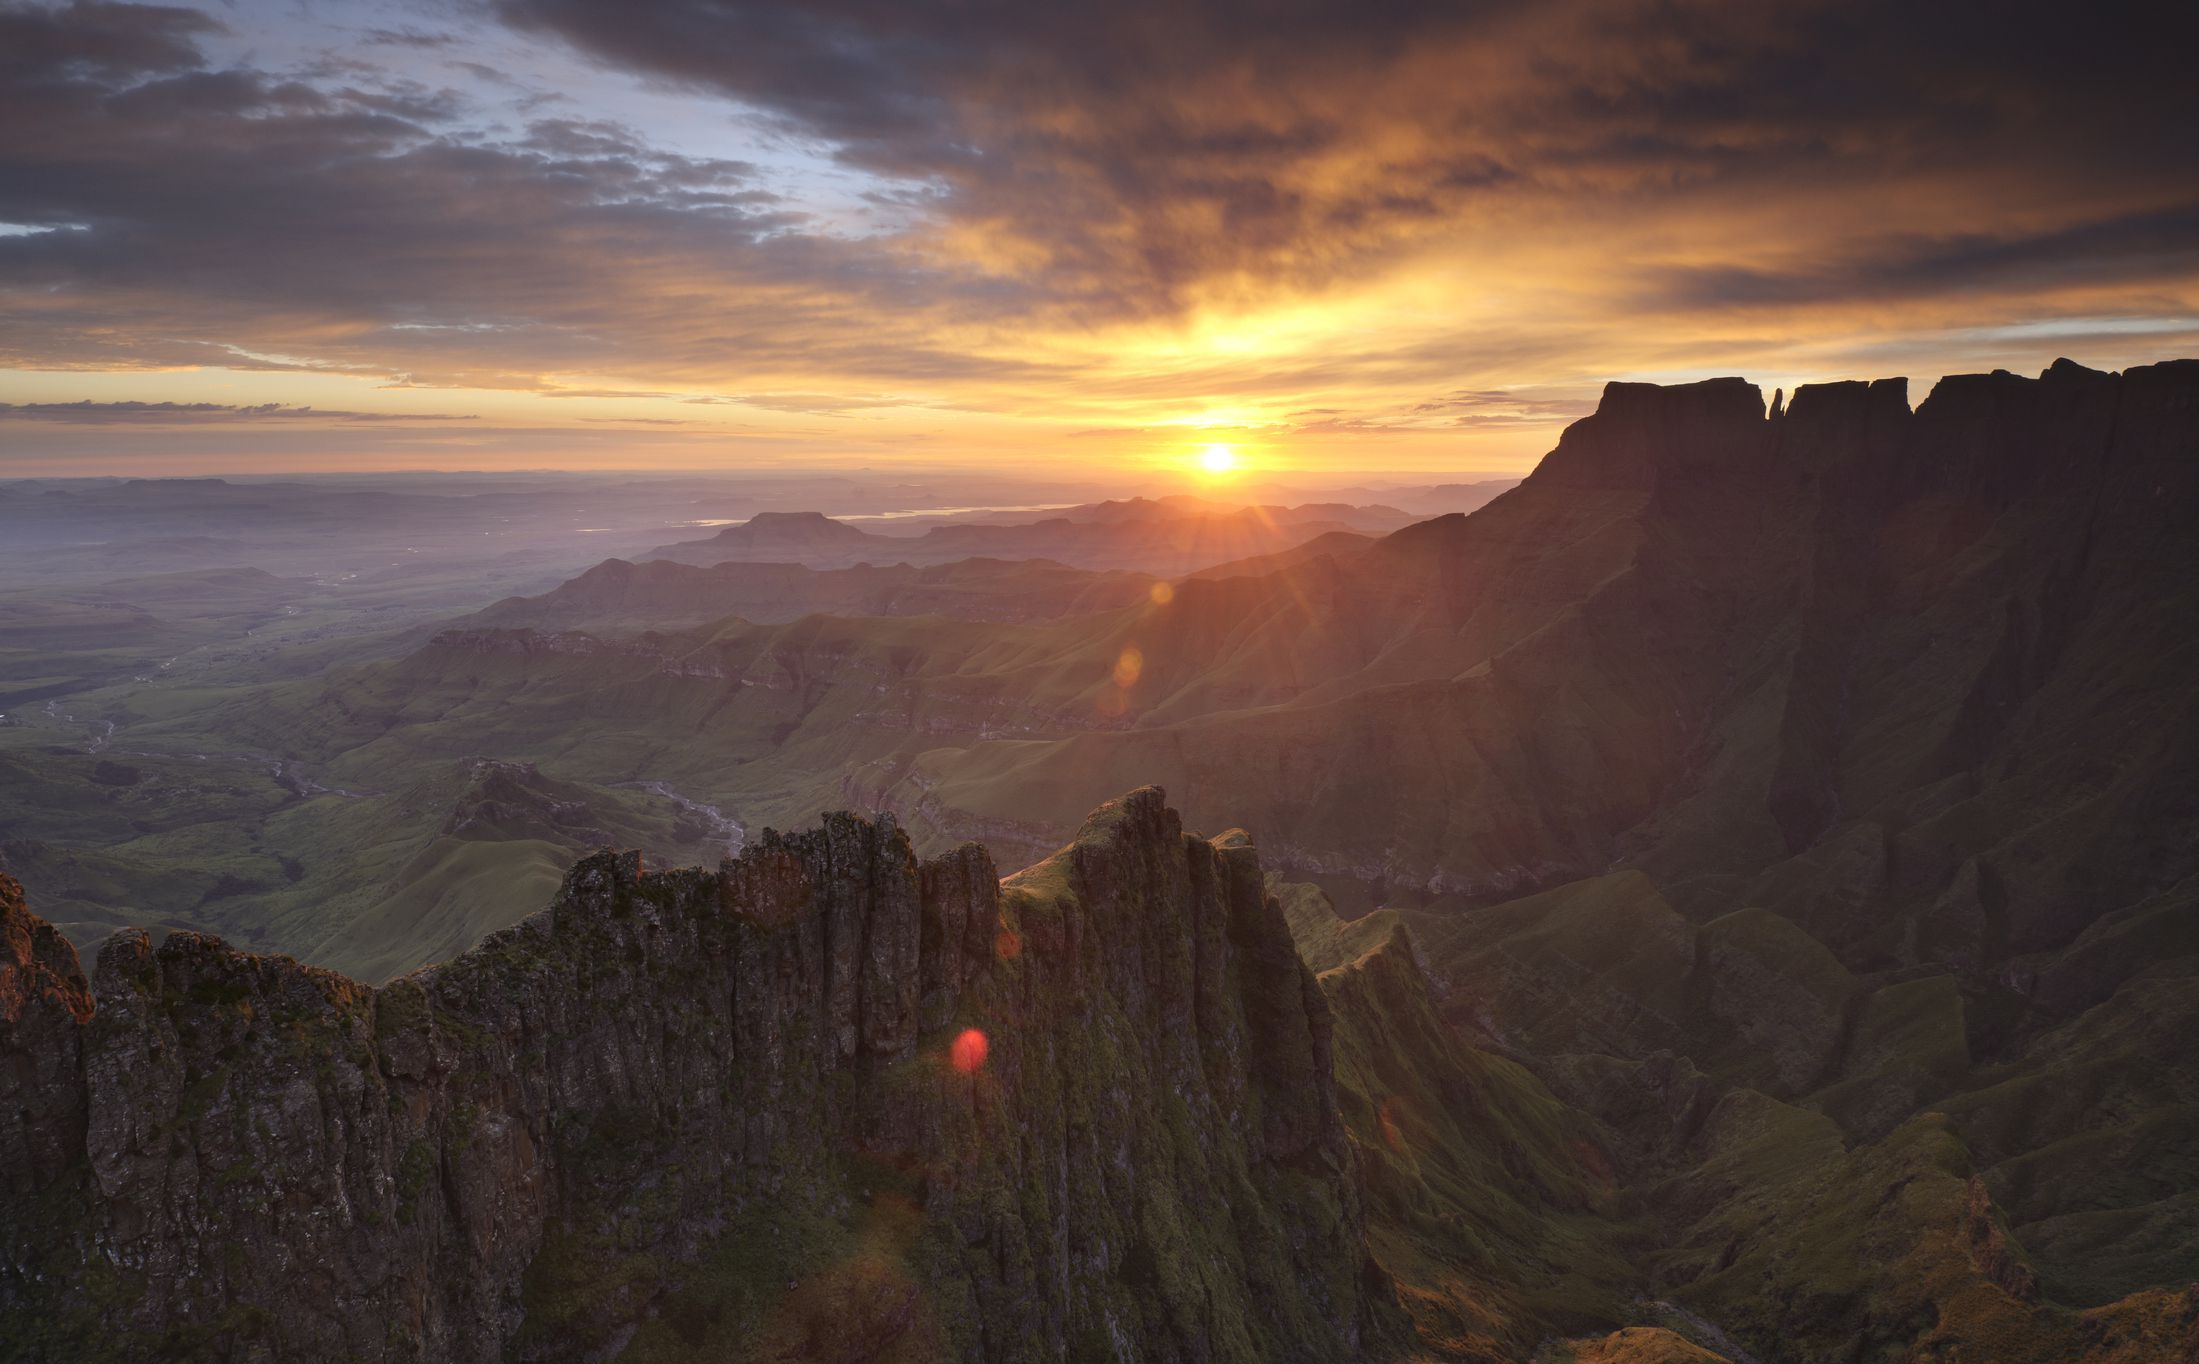 Renting A Car In South Africa - Exploring south africa 10 best day trips